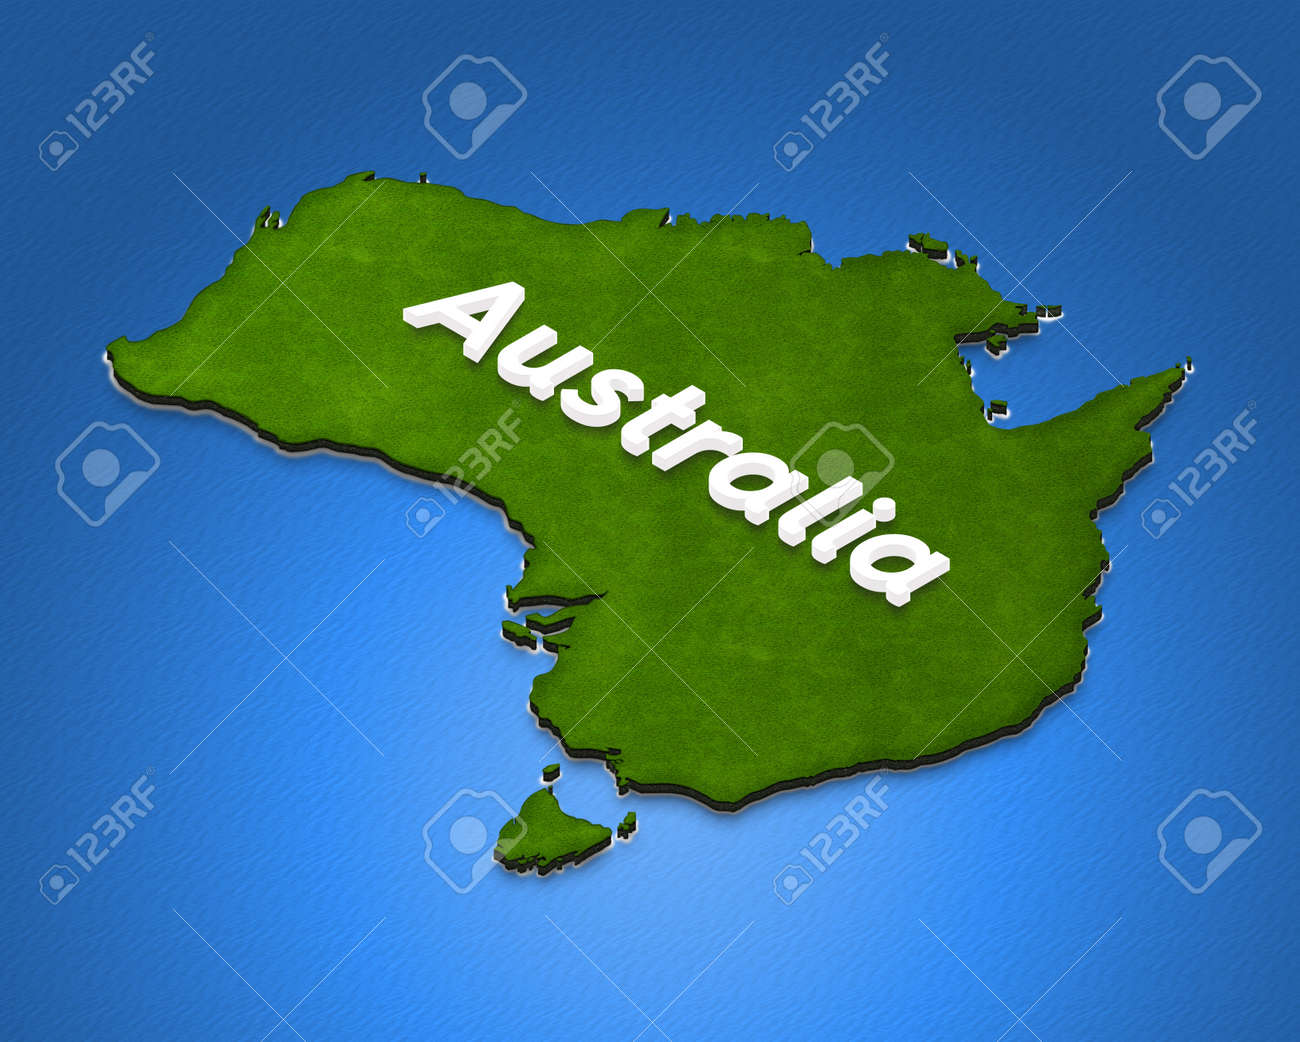 Illustration green ground map of australia on water background illustration illustration green ground map of australia on water background left 3d isometric projection with the name of continent gumiabroncs Gallery